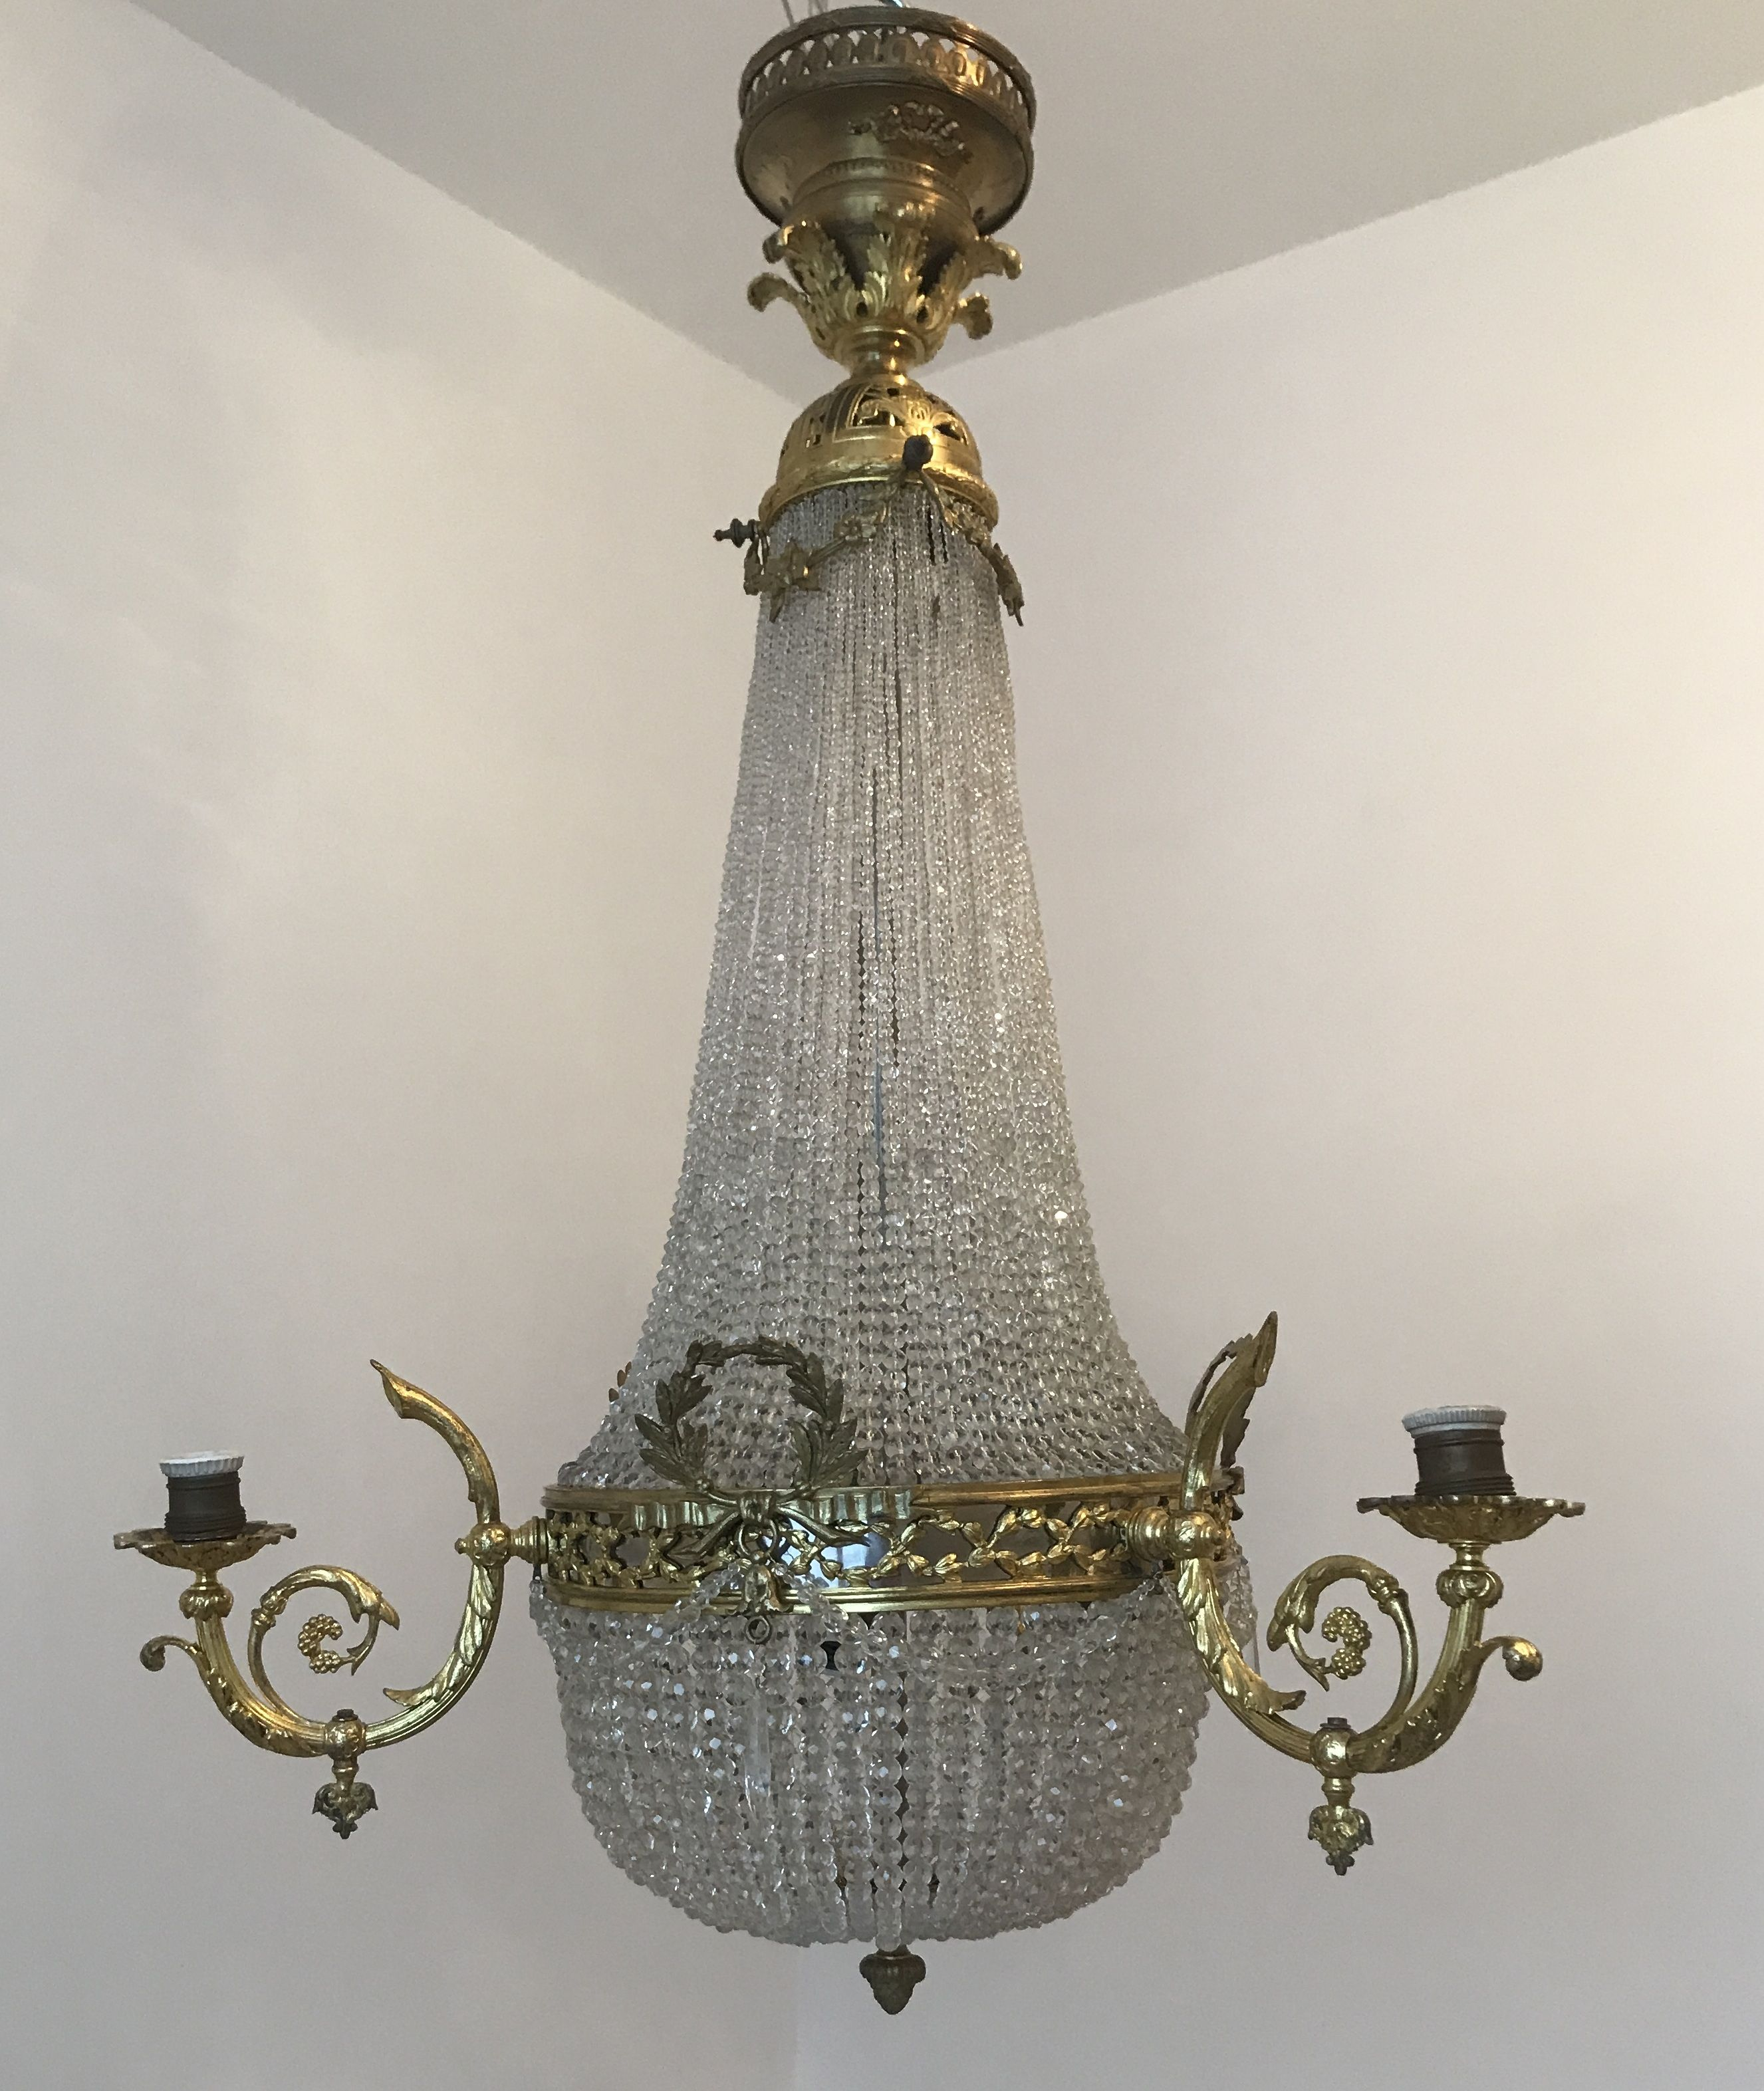 Antique French Empire Chandelier Regency Basket Tent And Bag 19th Crystal Beaded Lamp Gasolier Glass Ormolu Bronze Hand